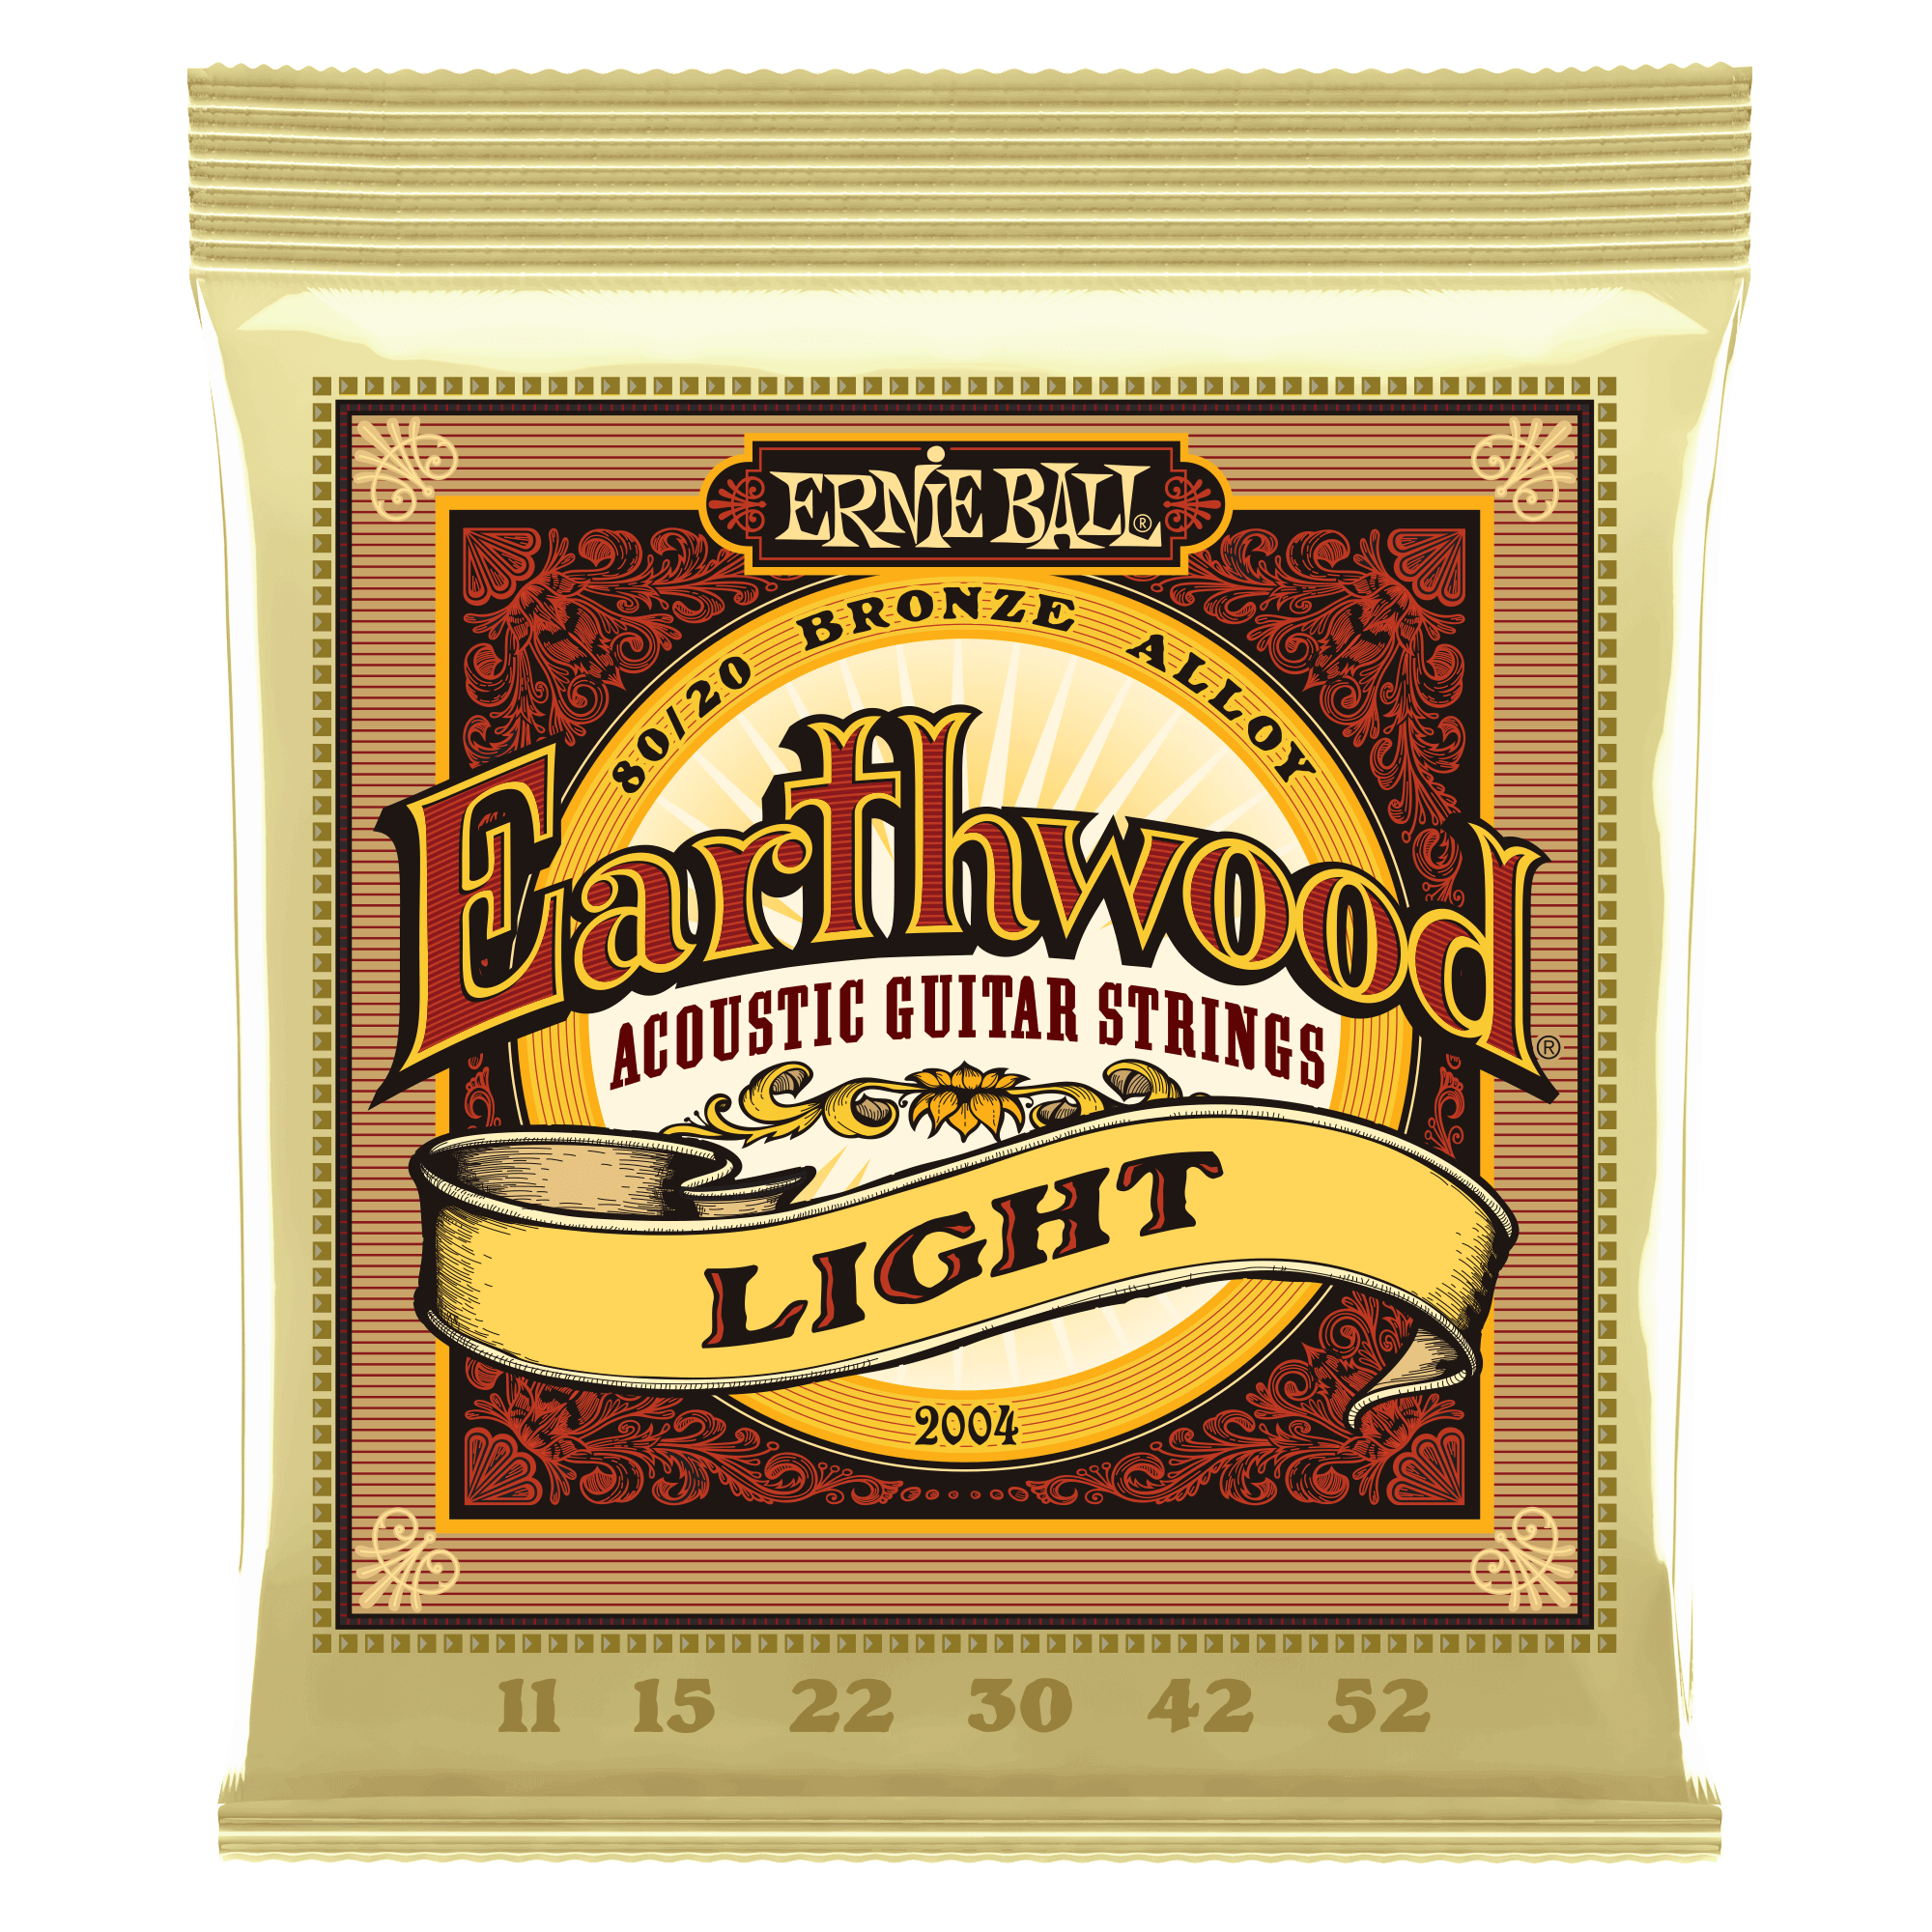 Ernie Ball Earthwood Bronze - Light 2004 11-52